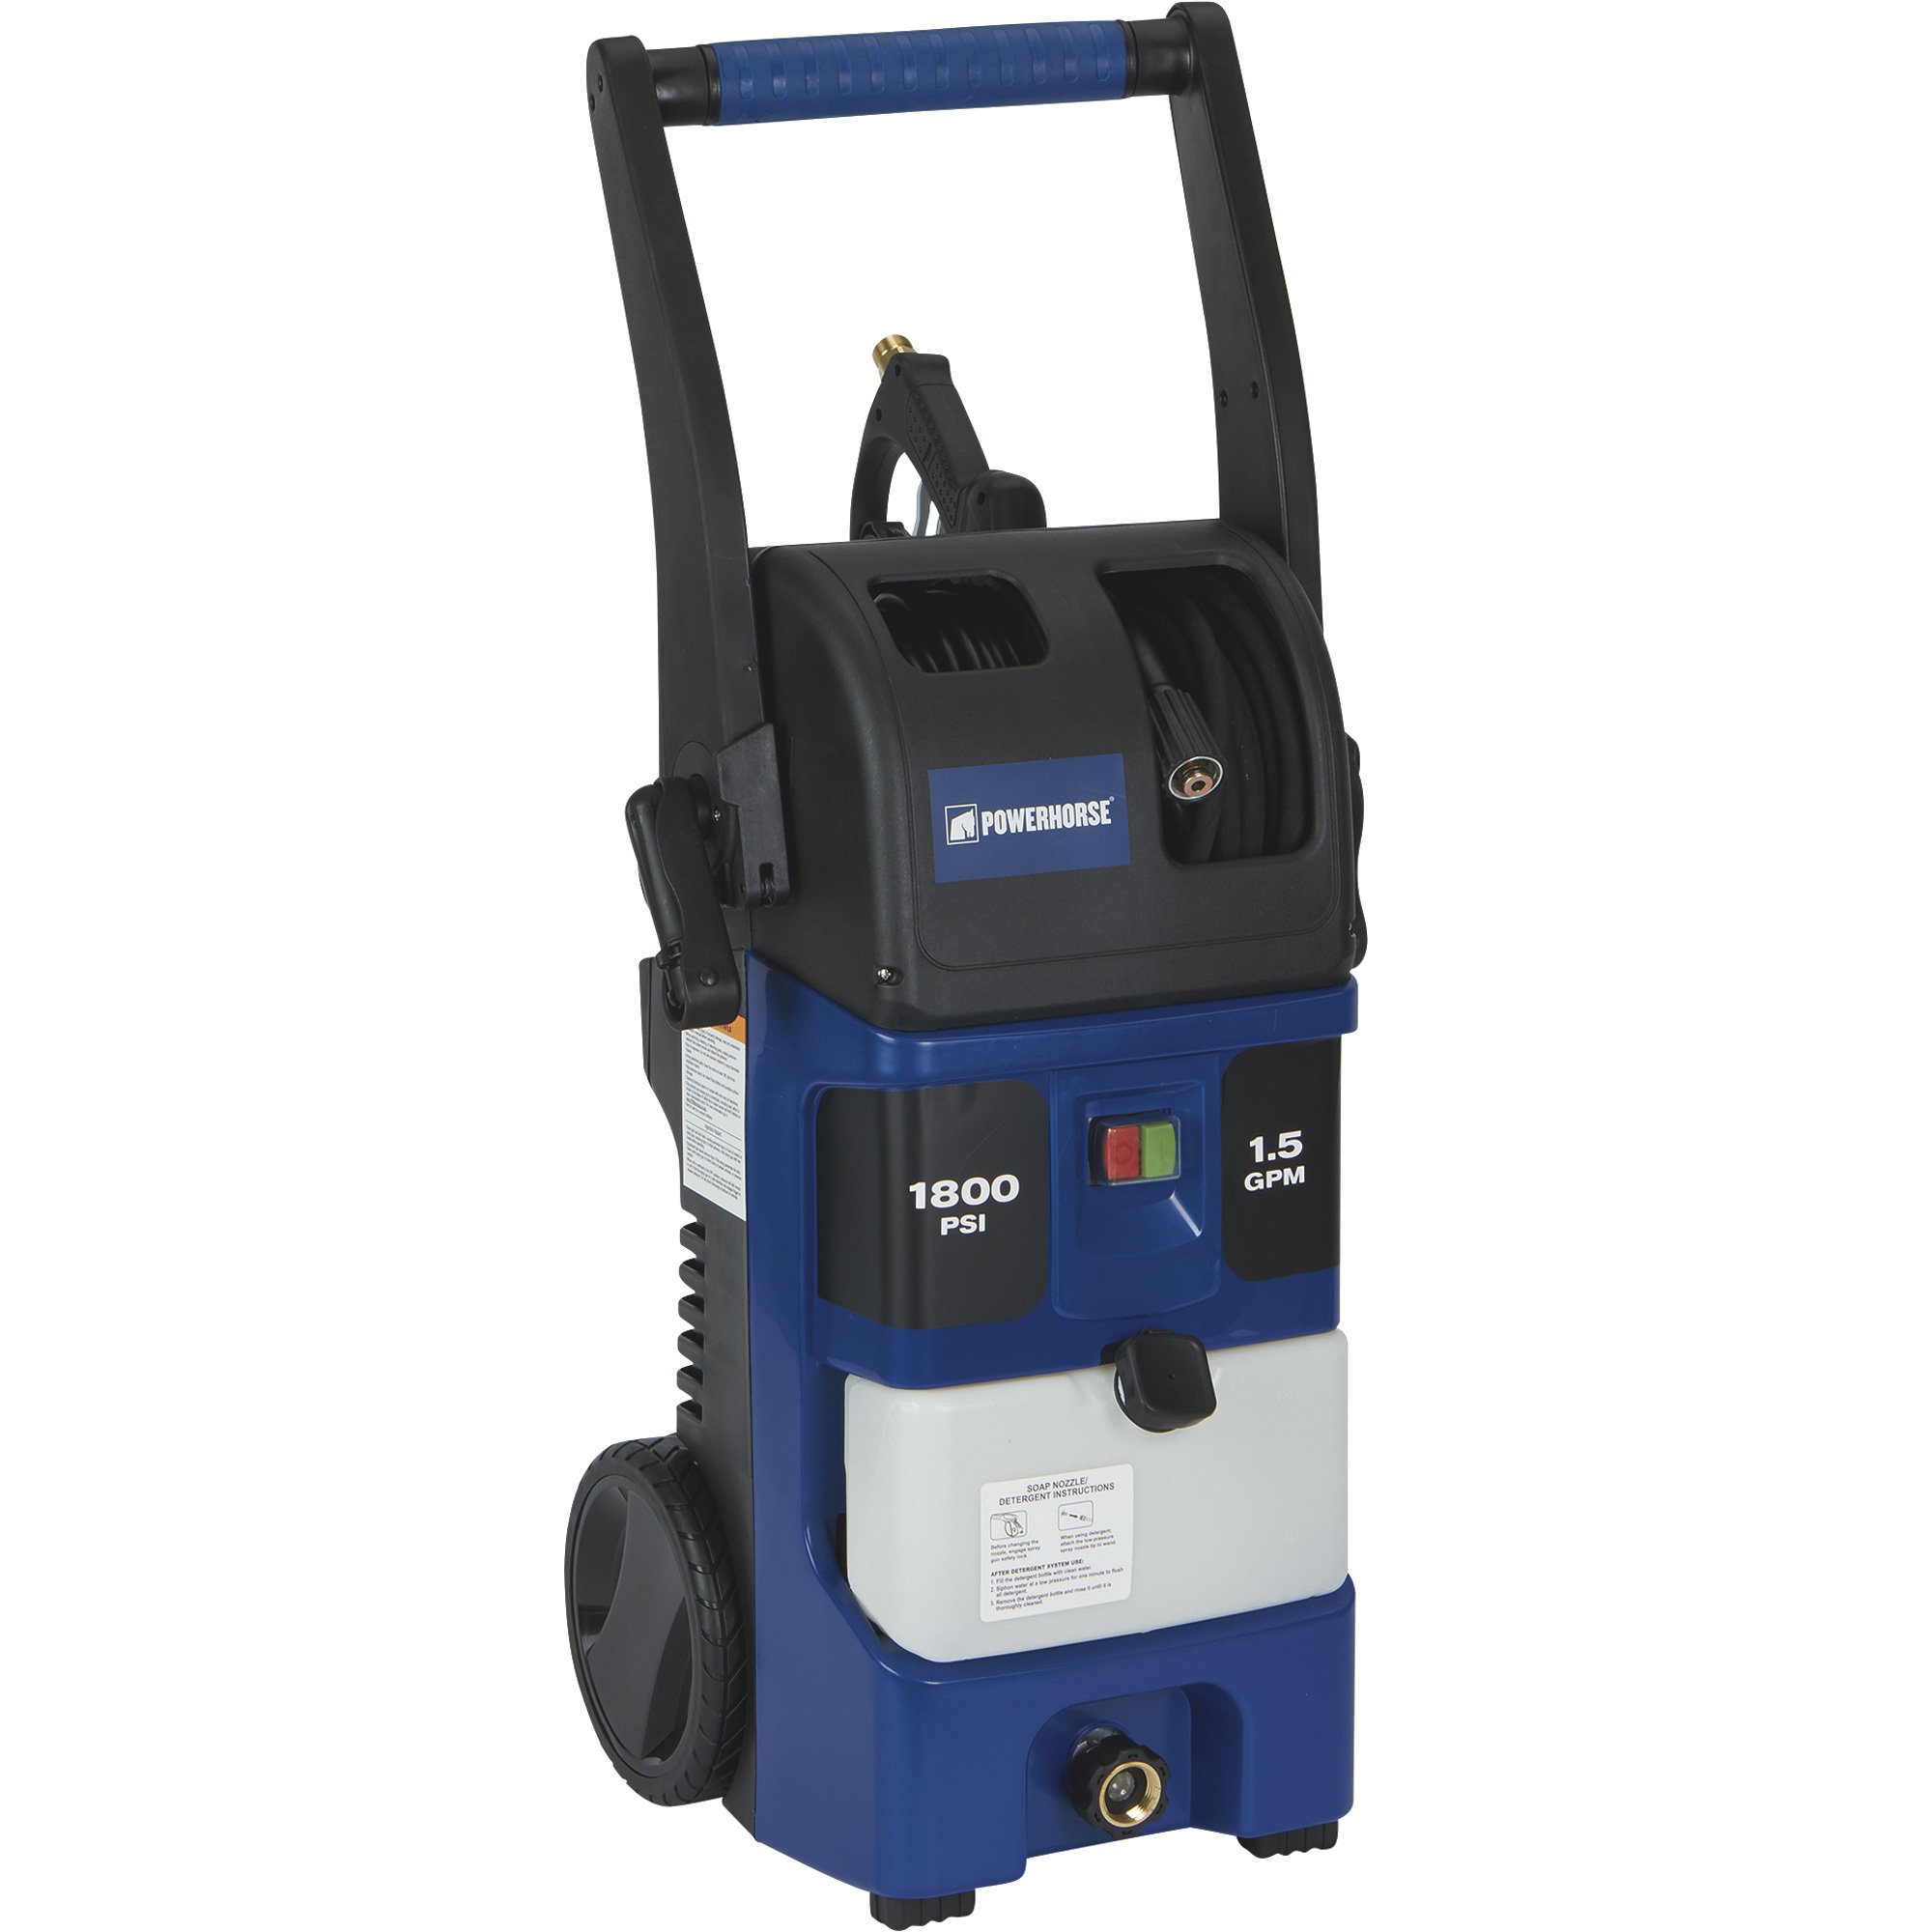 Powerhorse 157055 Electric Pressure Washer - 1.5 GPM, 1800 PSI